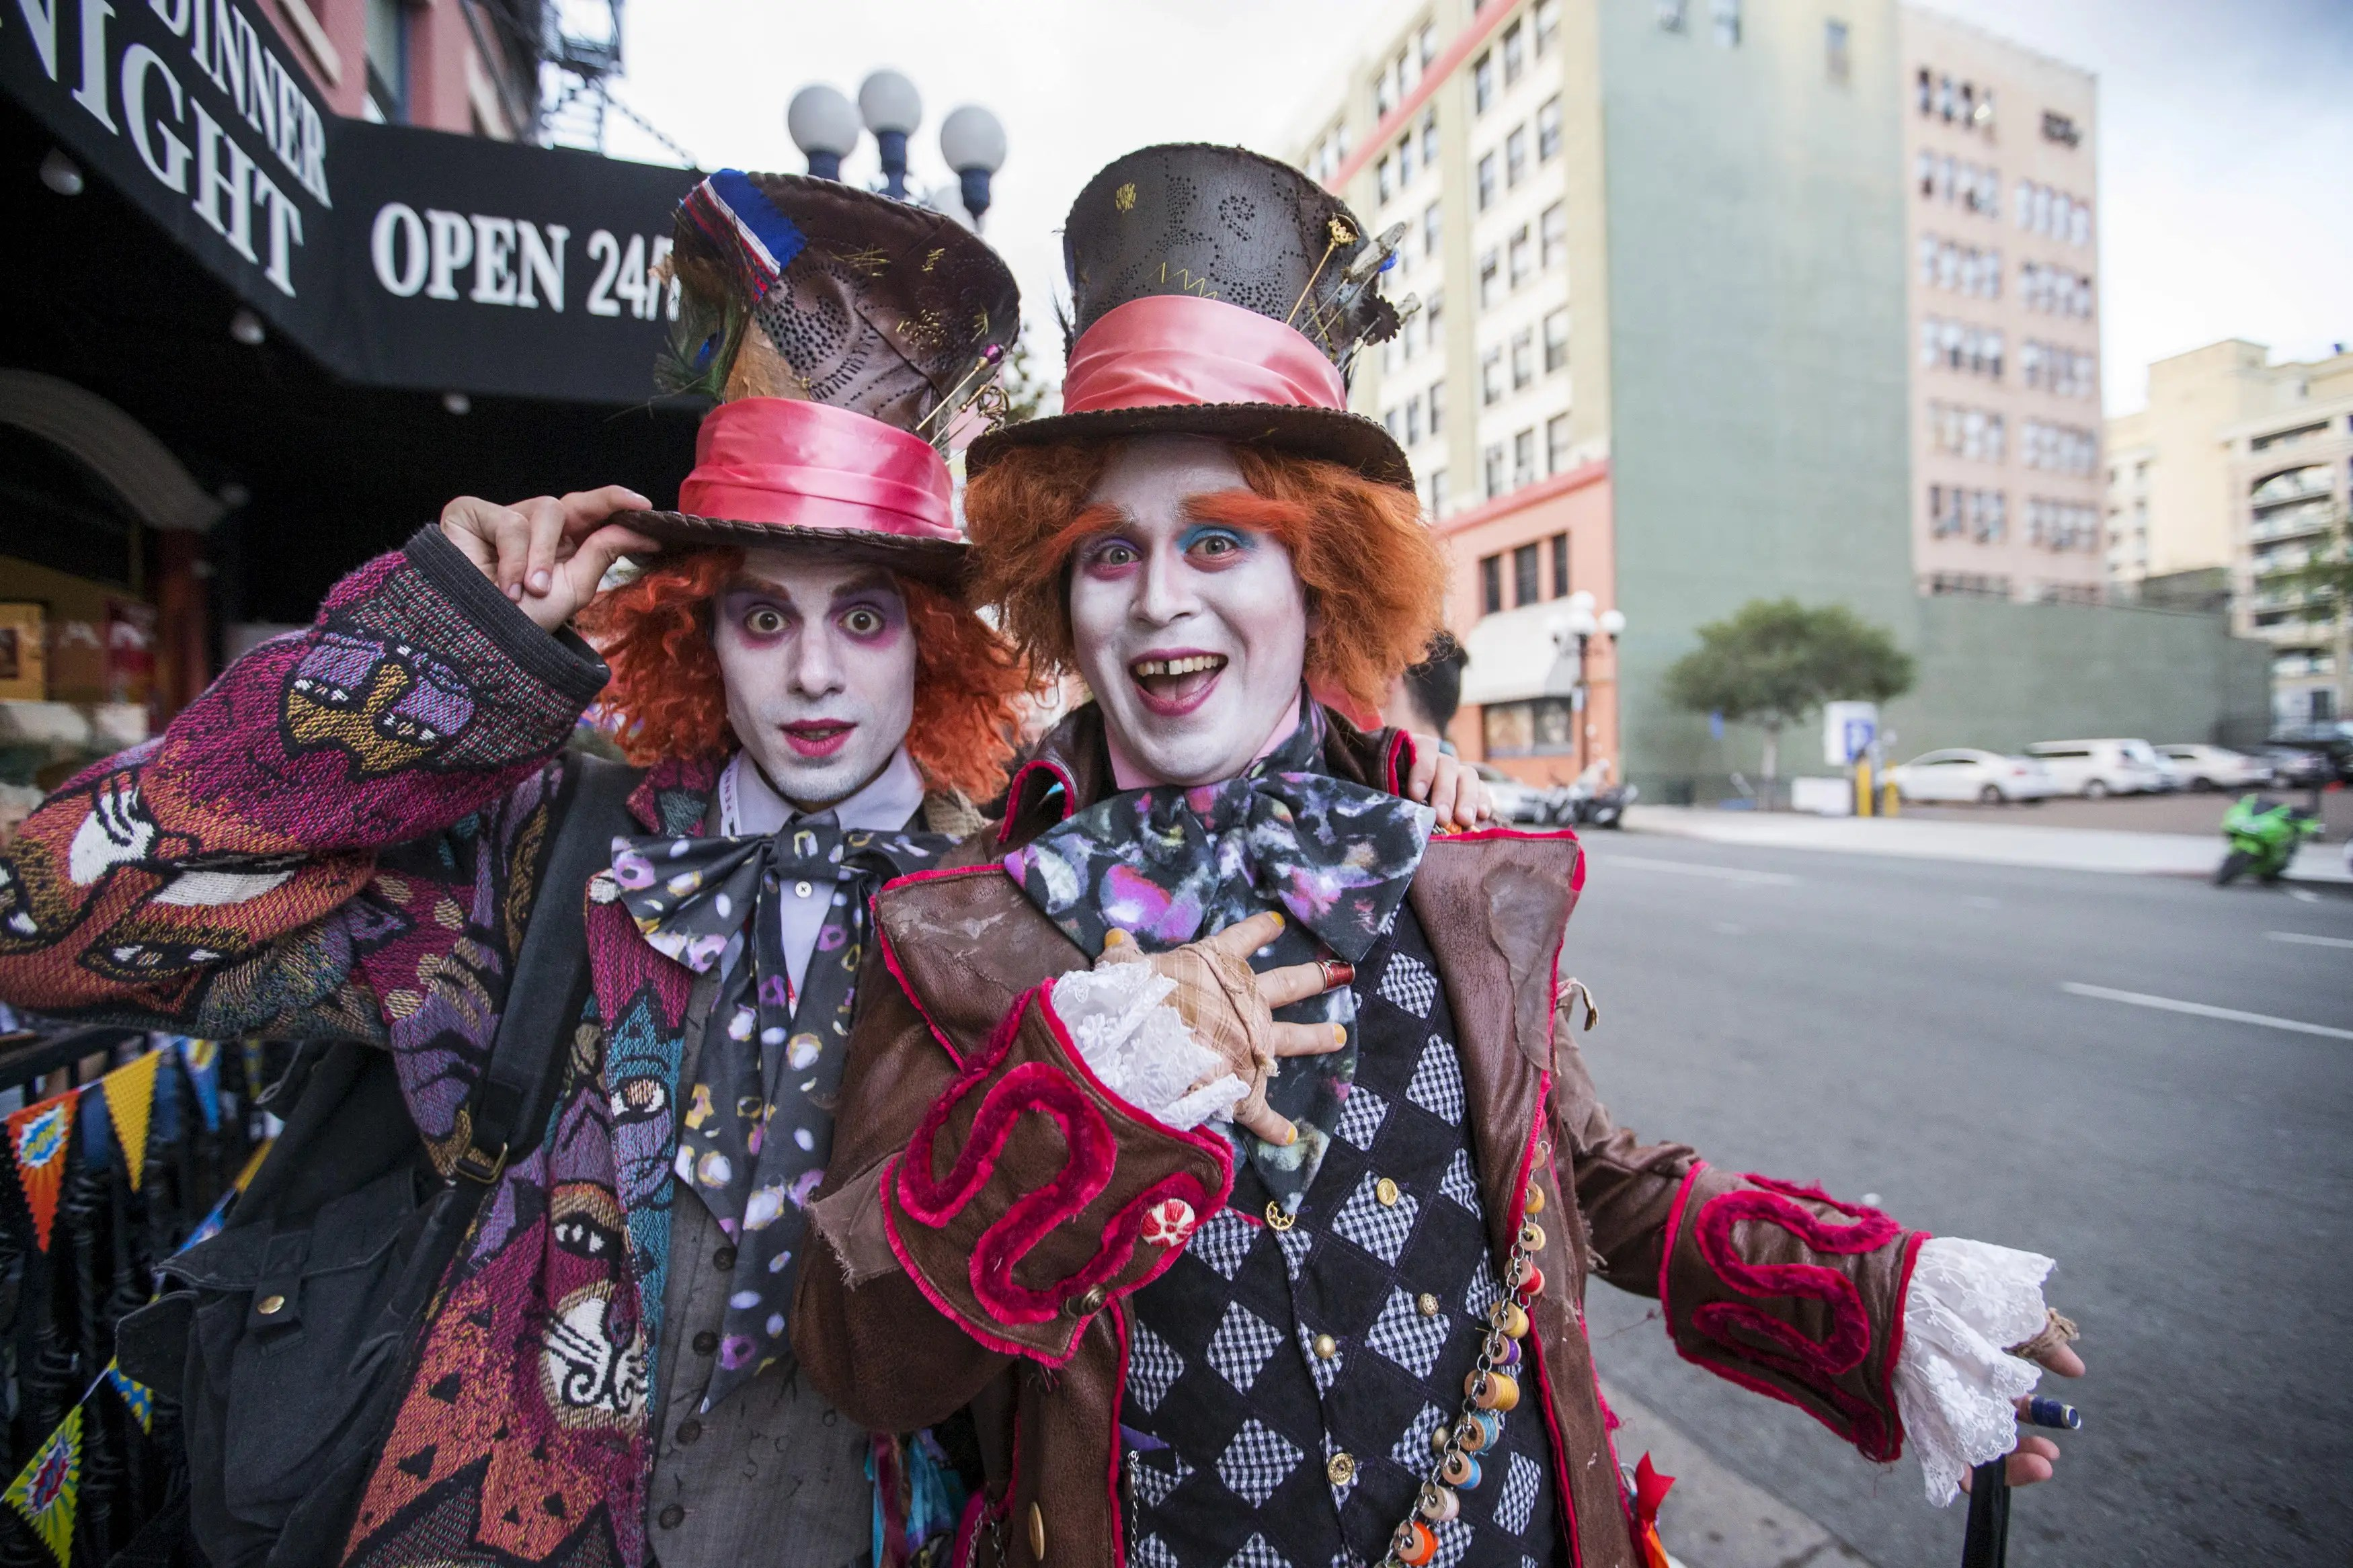 What's more unnerving than one Mad Hatter from Tim Burton's